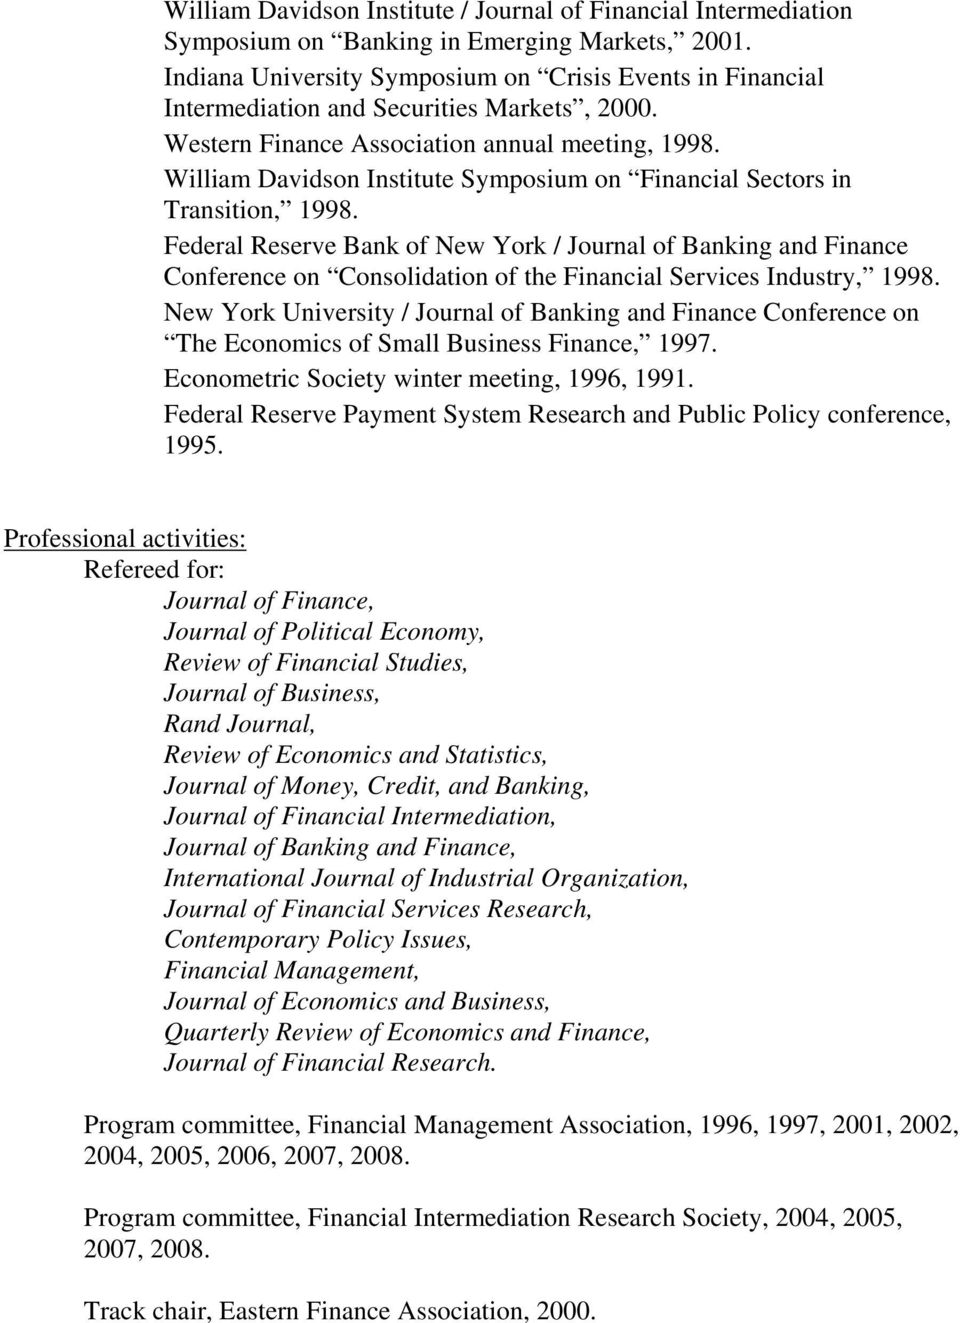 William Davidson Institute Symposium on Financial Sectors in Transition, 1998.